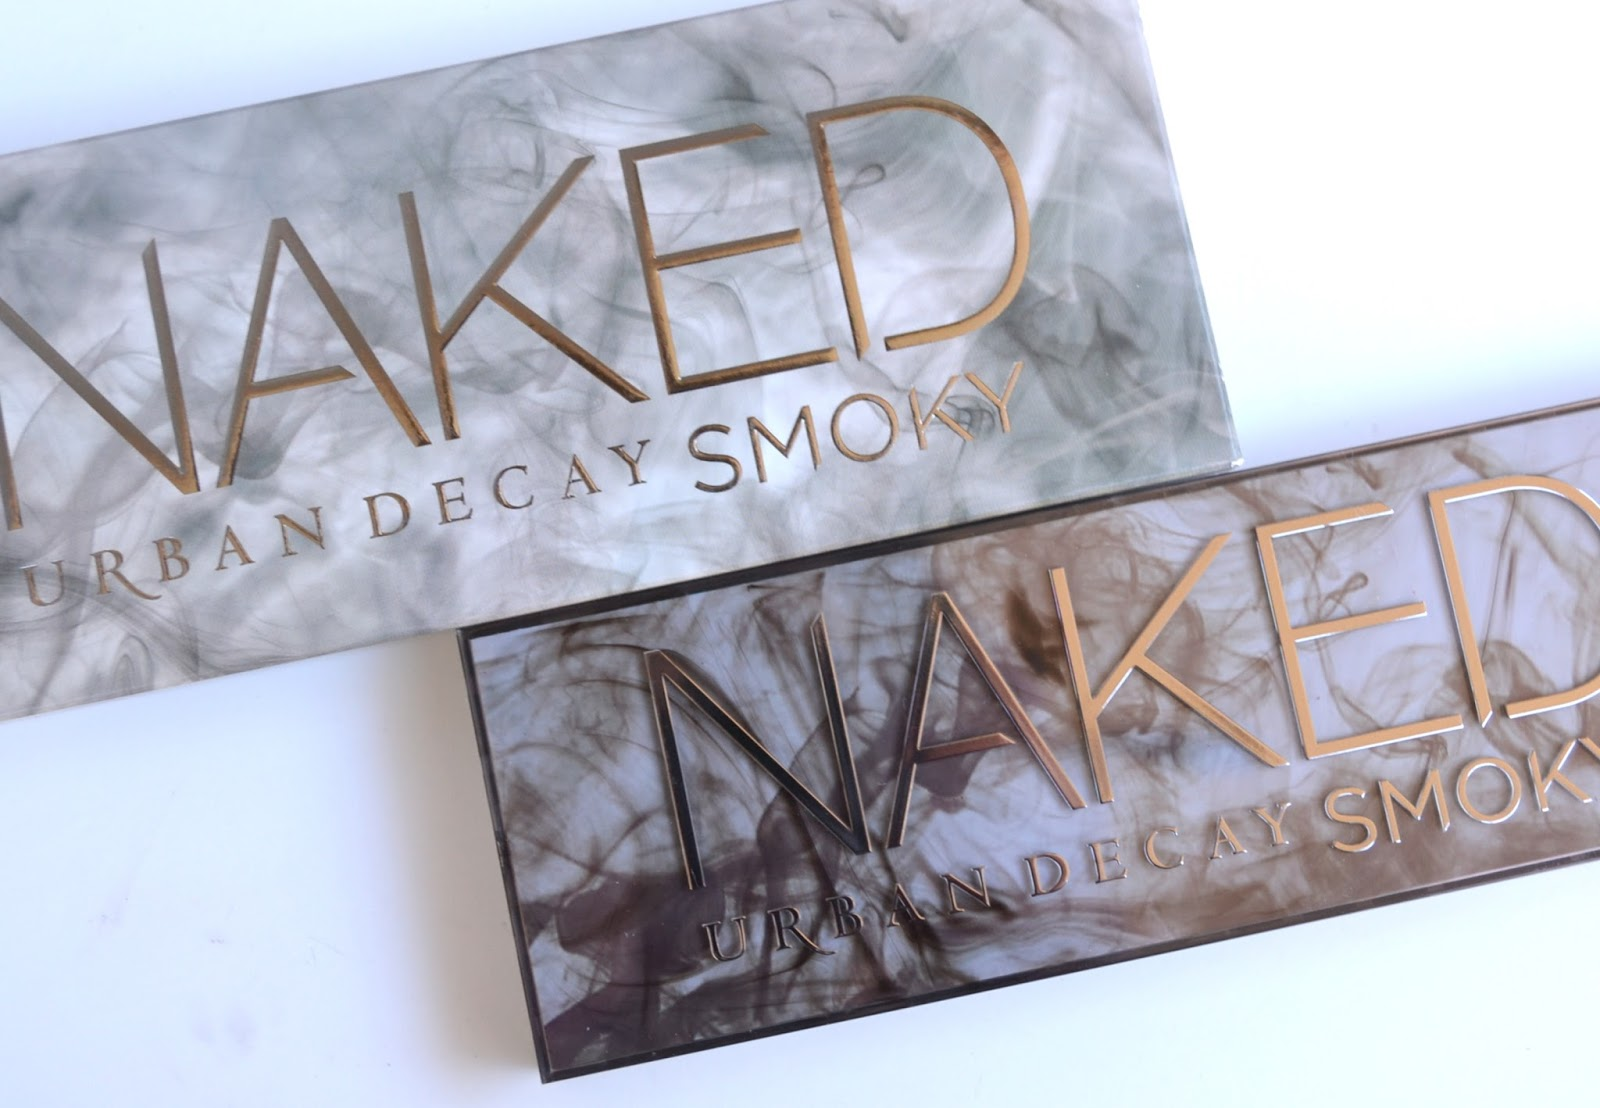 UD PRO Smoky Smudger Brush by Urban Decay #19